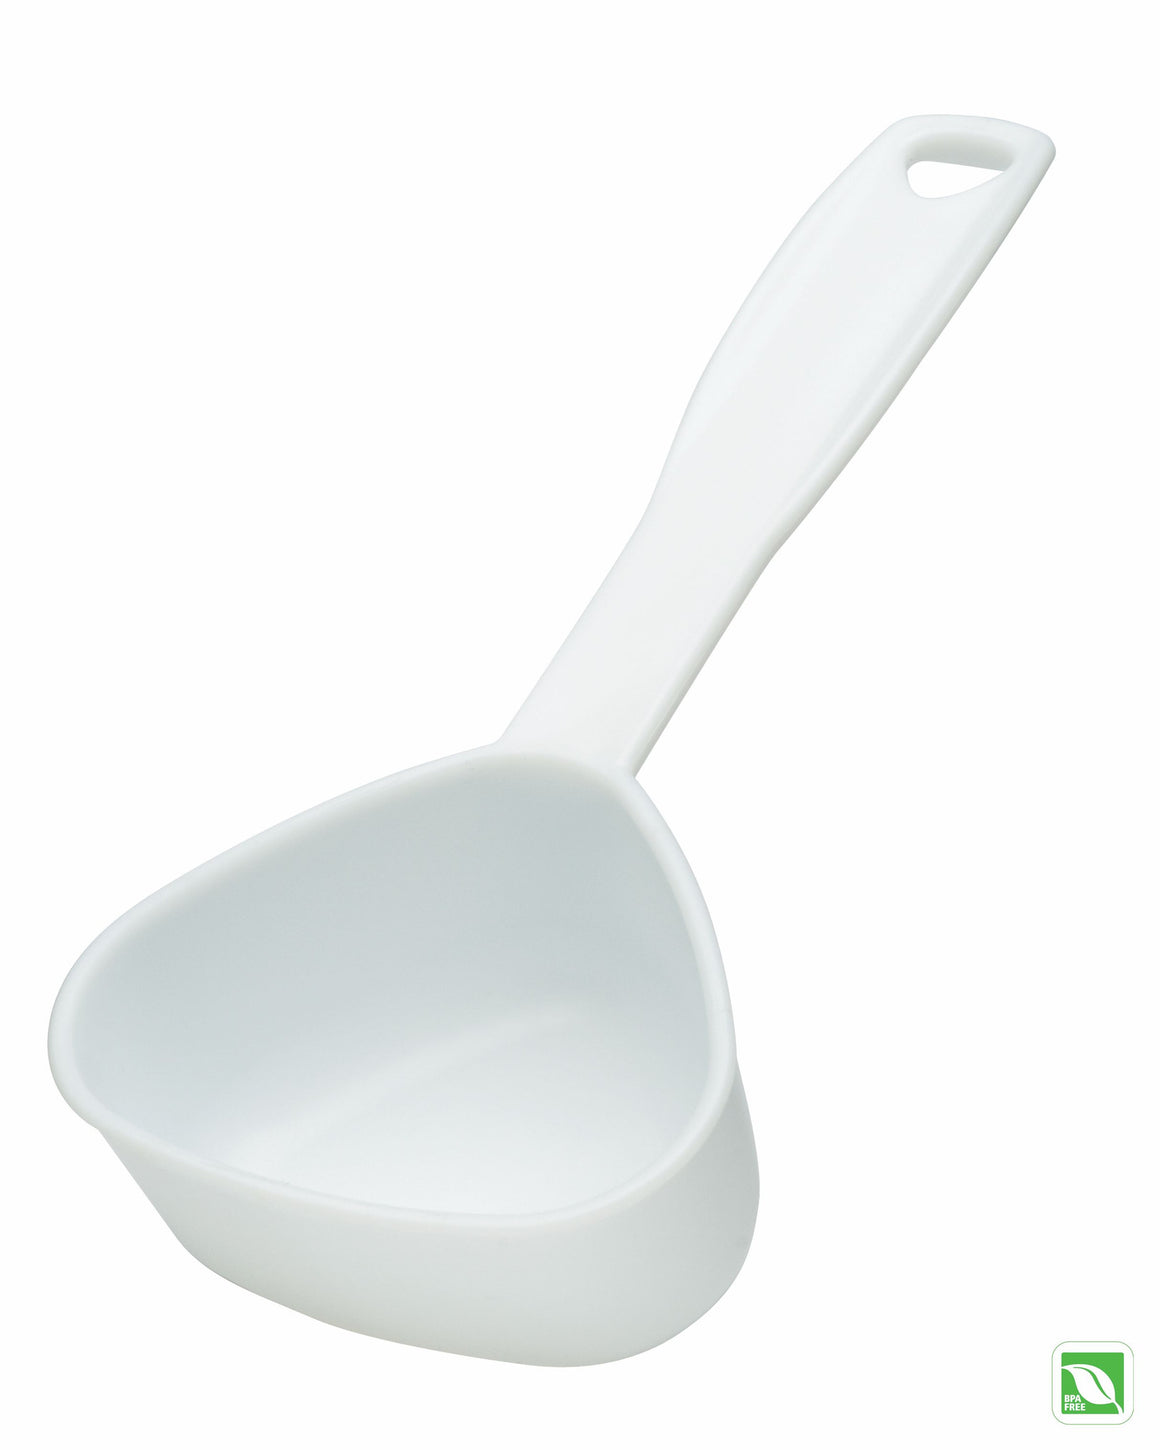 1/2 CUP MEASURING SCOOP for 9G60 INGREDIENT BIN